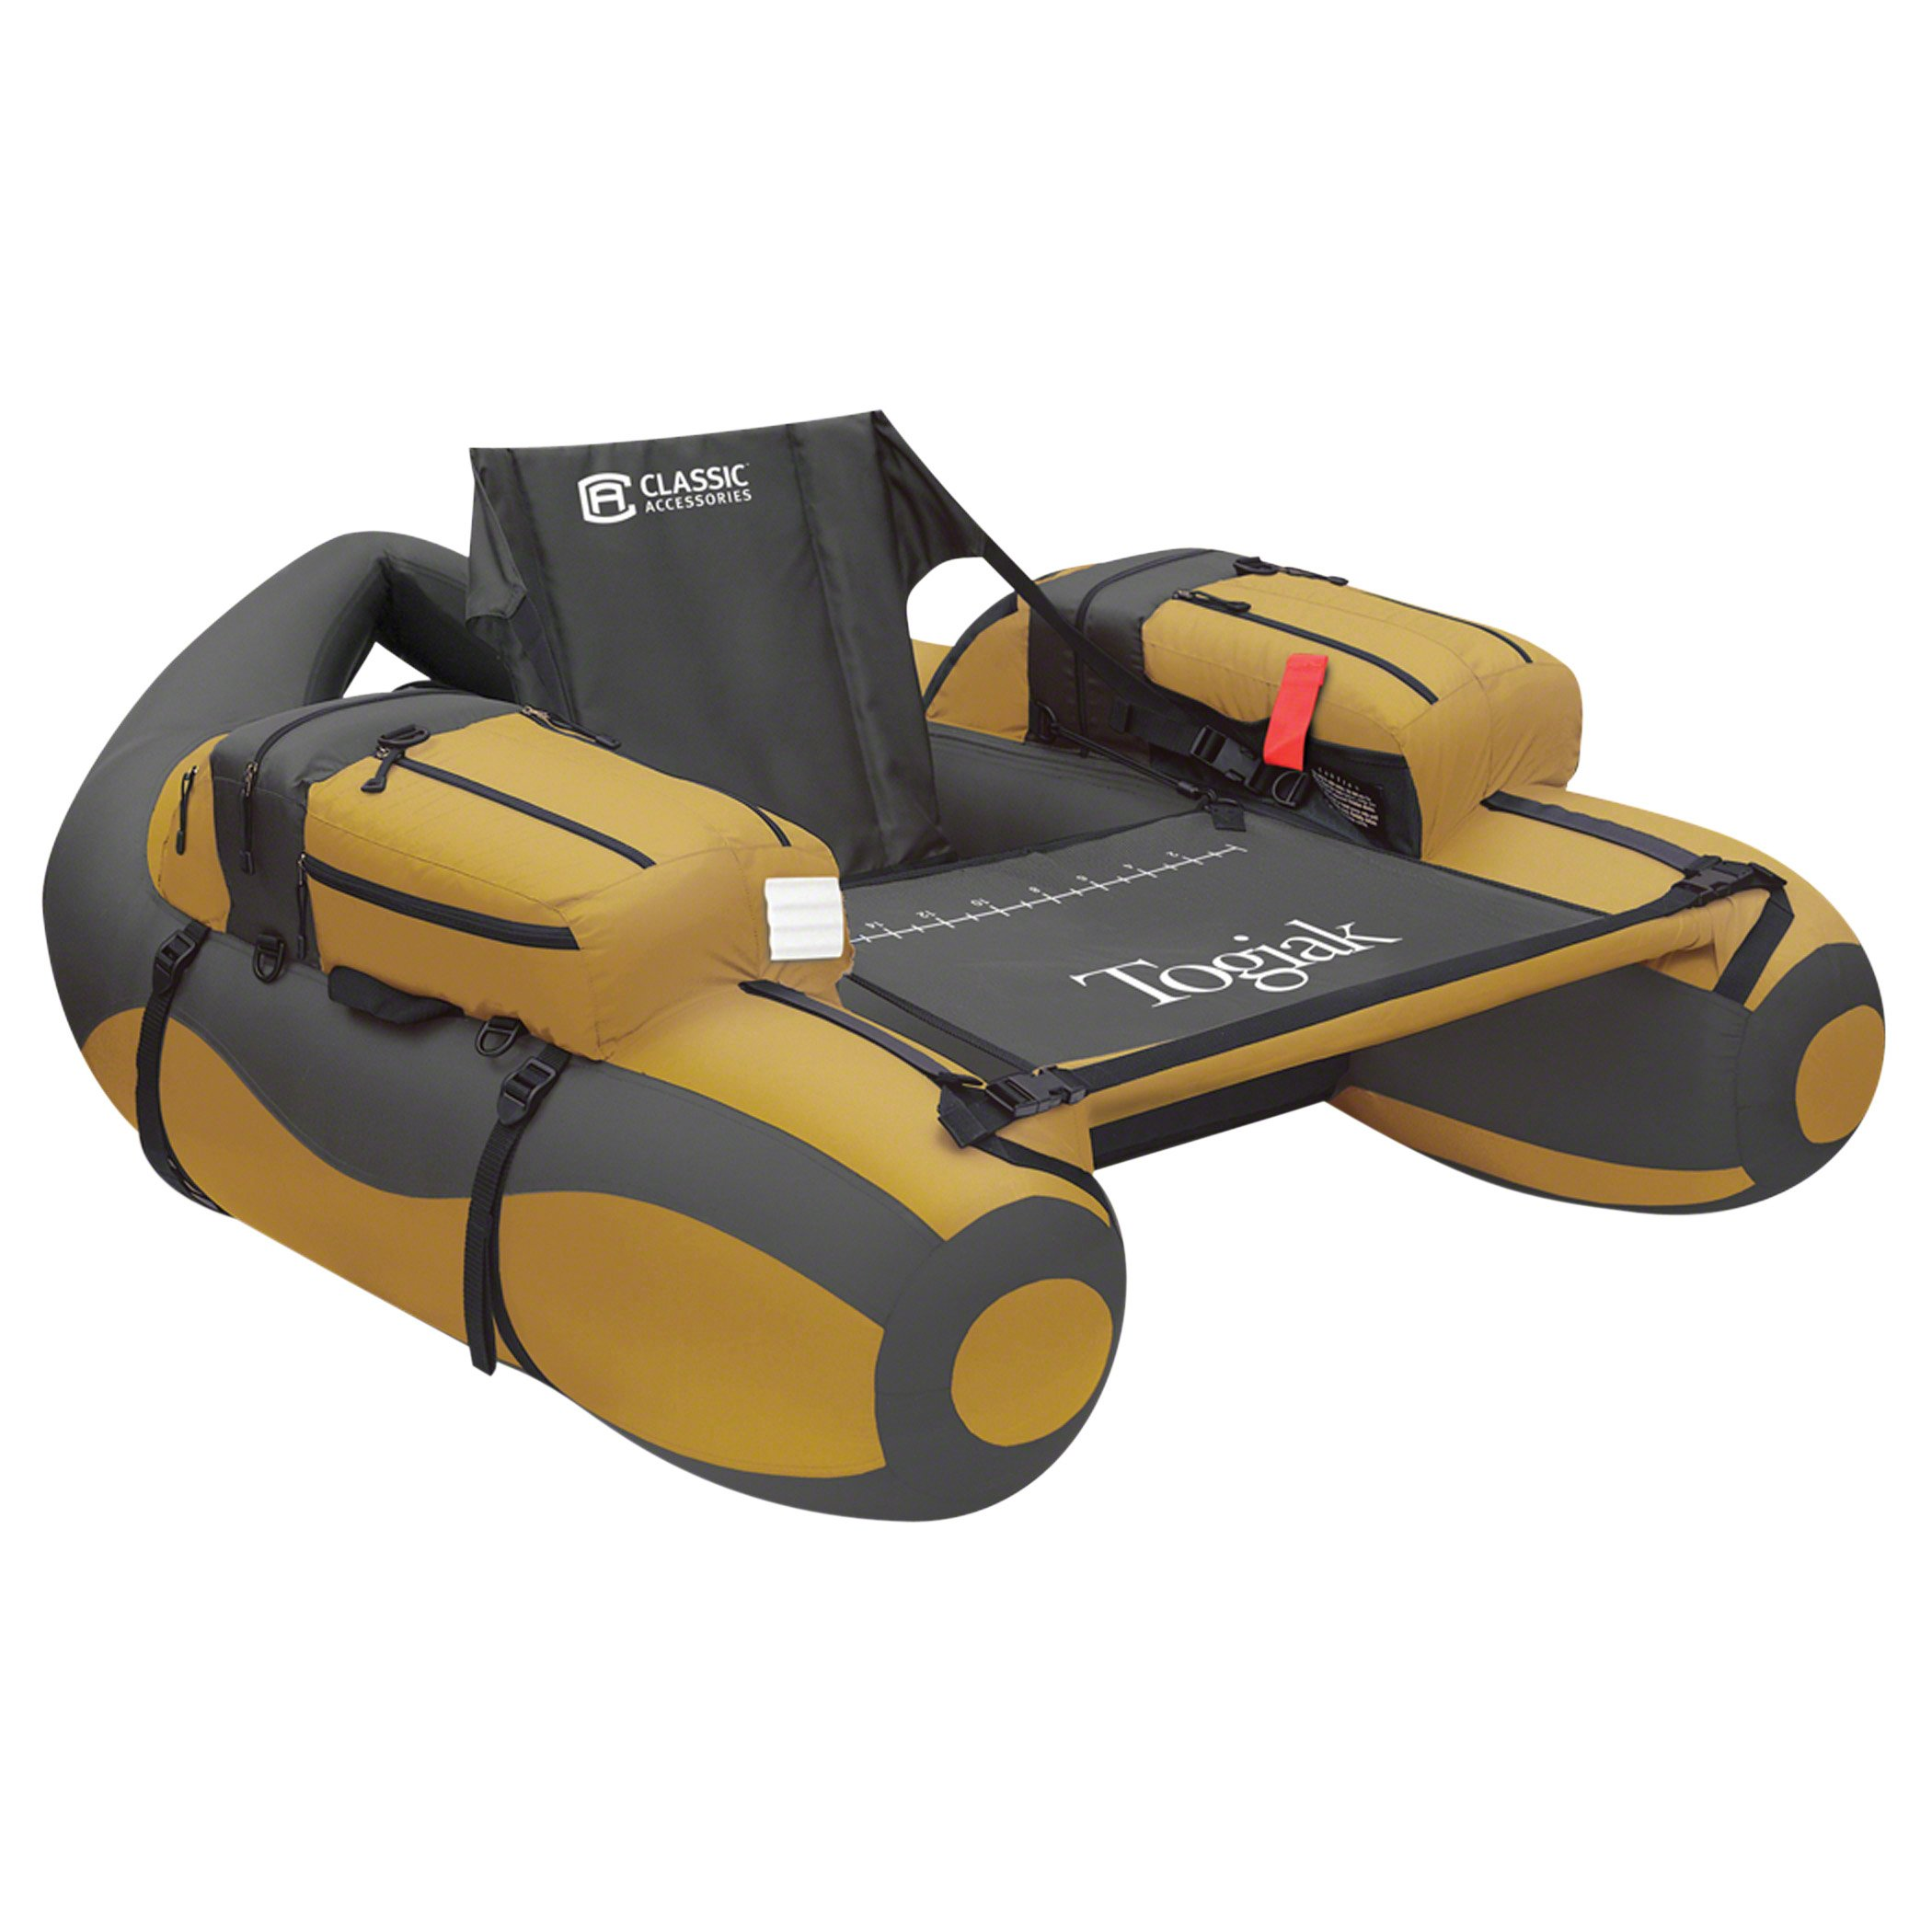 Classic Accessories Togiak Inflatable Fishing Float Tube With Backpack Straps by Classic Accessories